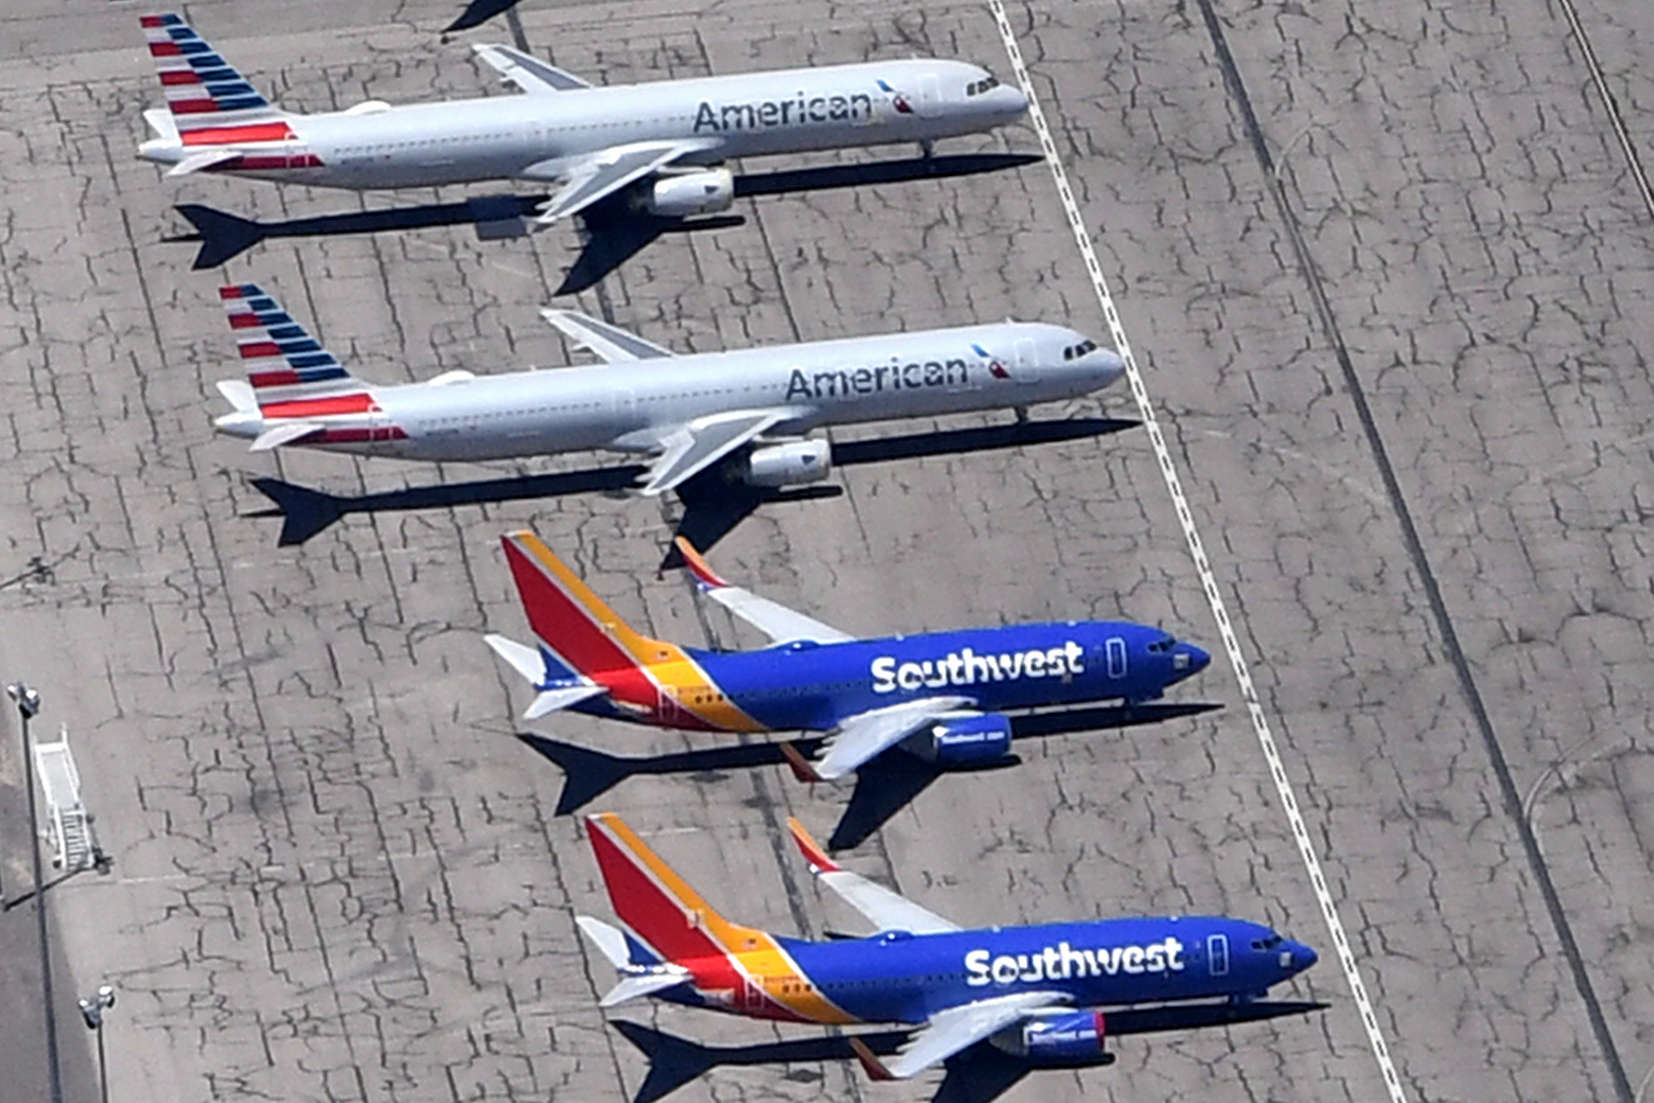 American and Southwest planes